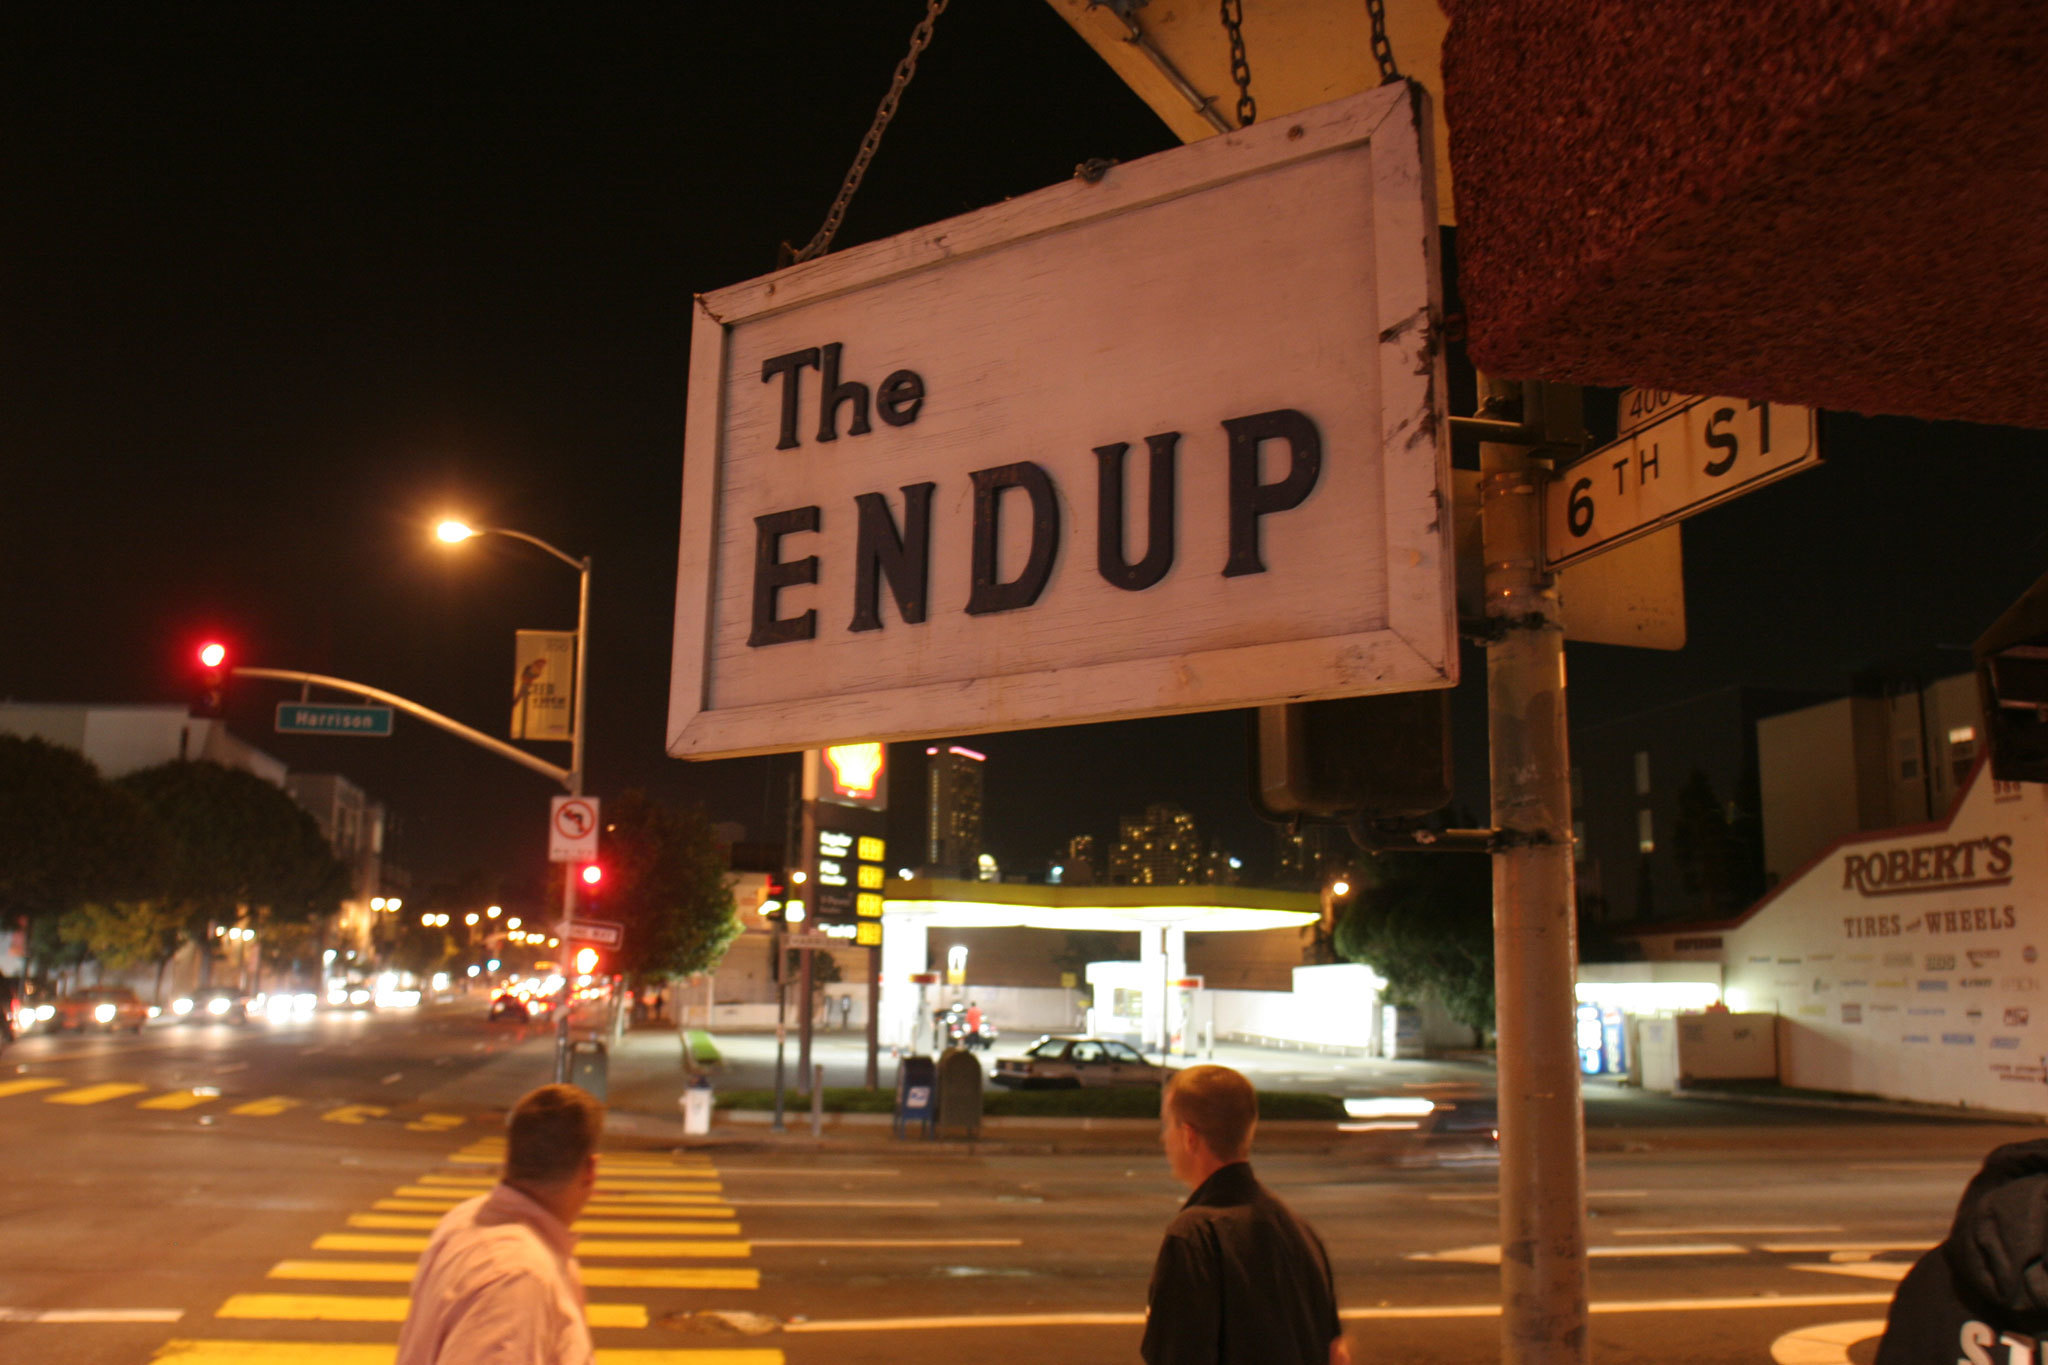 The End Up